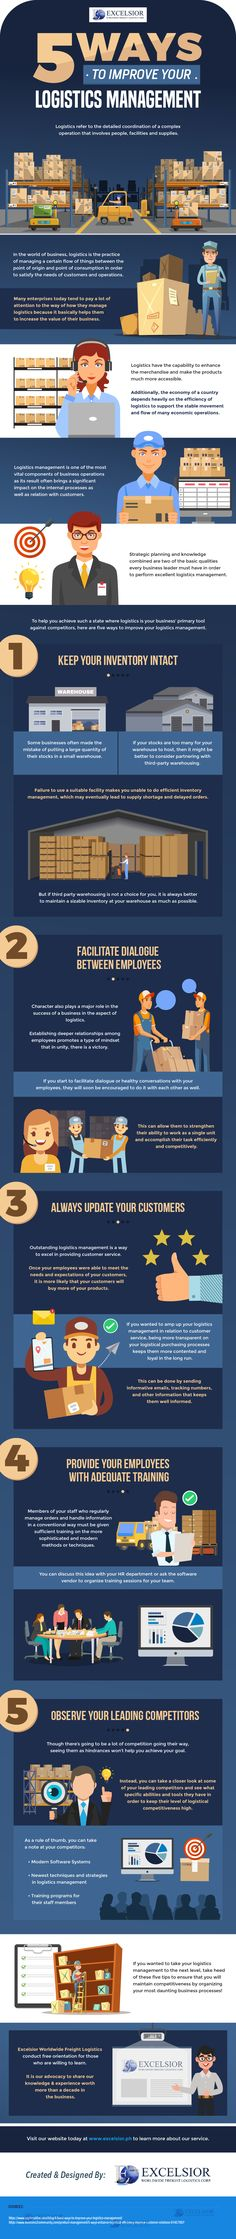 One of the factors of having a successful supply chain is your logistics. If you want to have a successful business, you need to have correct logistics manageme Supply Chain Logistics, Strategic Planning, How To Run Longer, 5 Ways, Improve Yourself, Management, Infographics, Successful Business, Ui Design